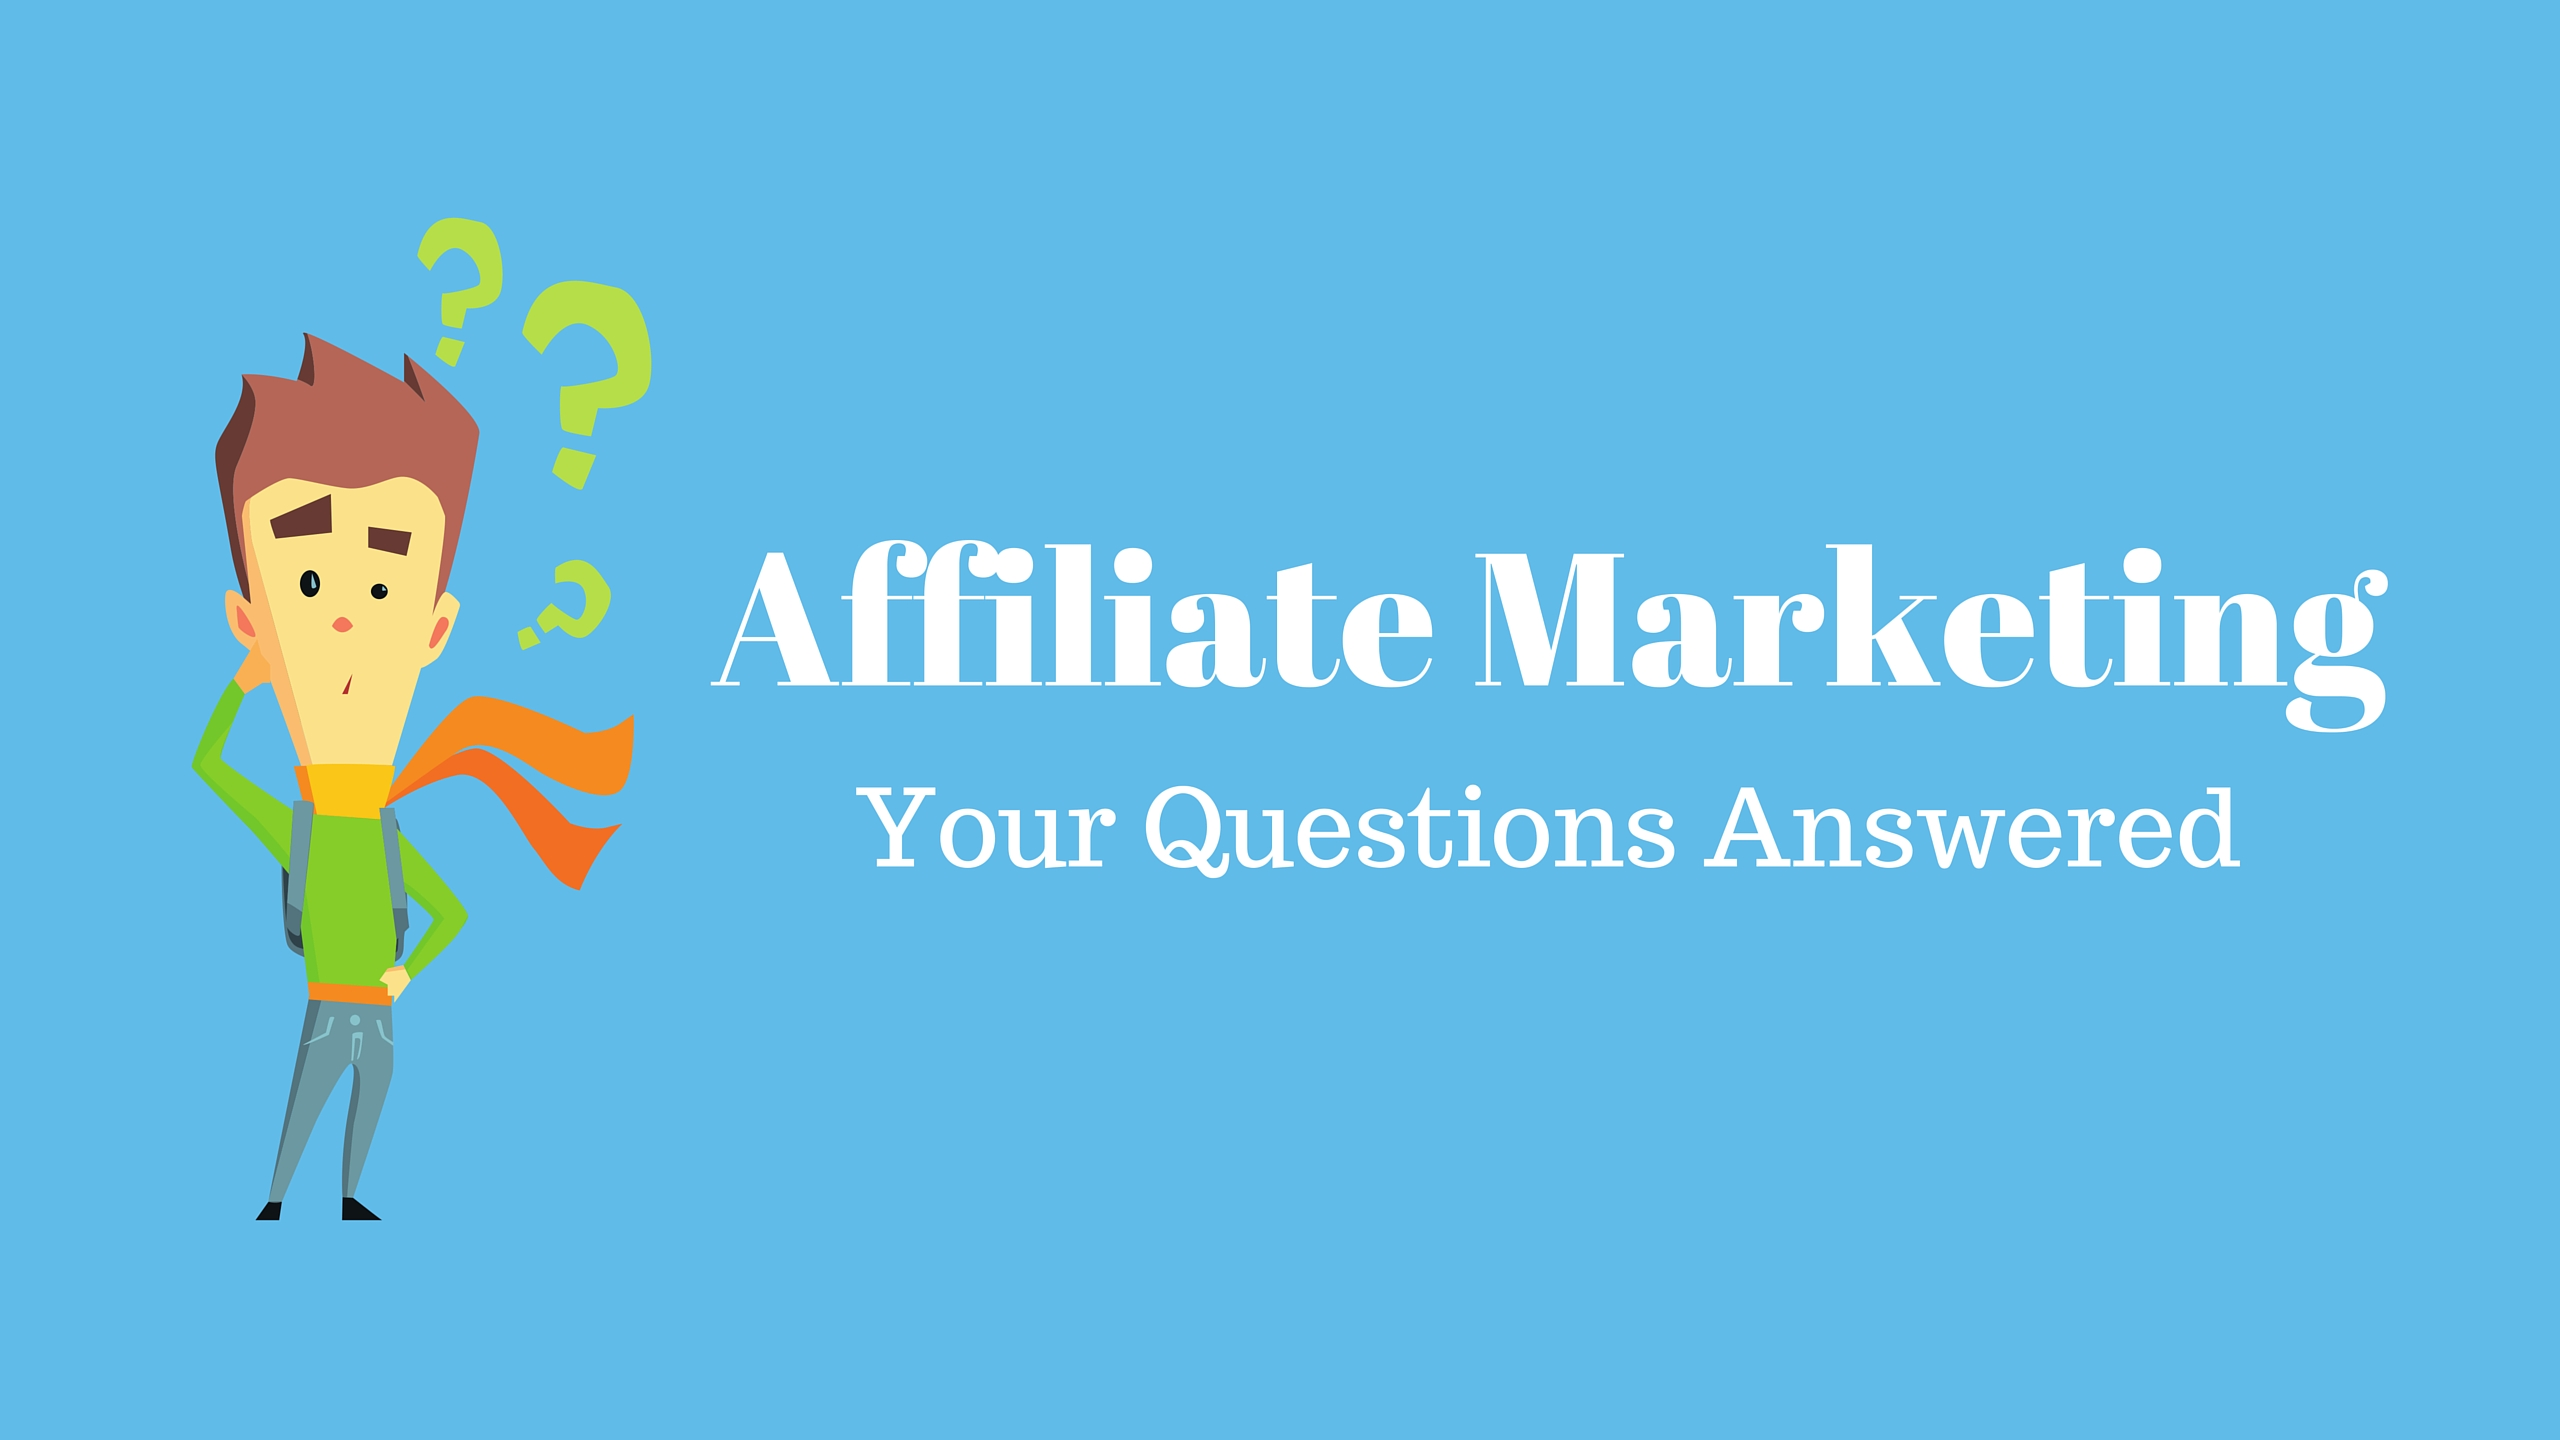 Affiliate Marketing - Your Questions Answered